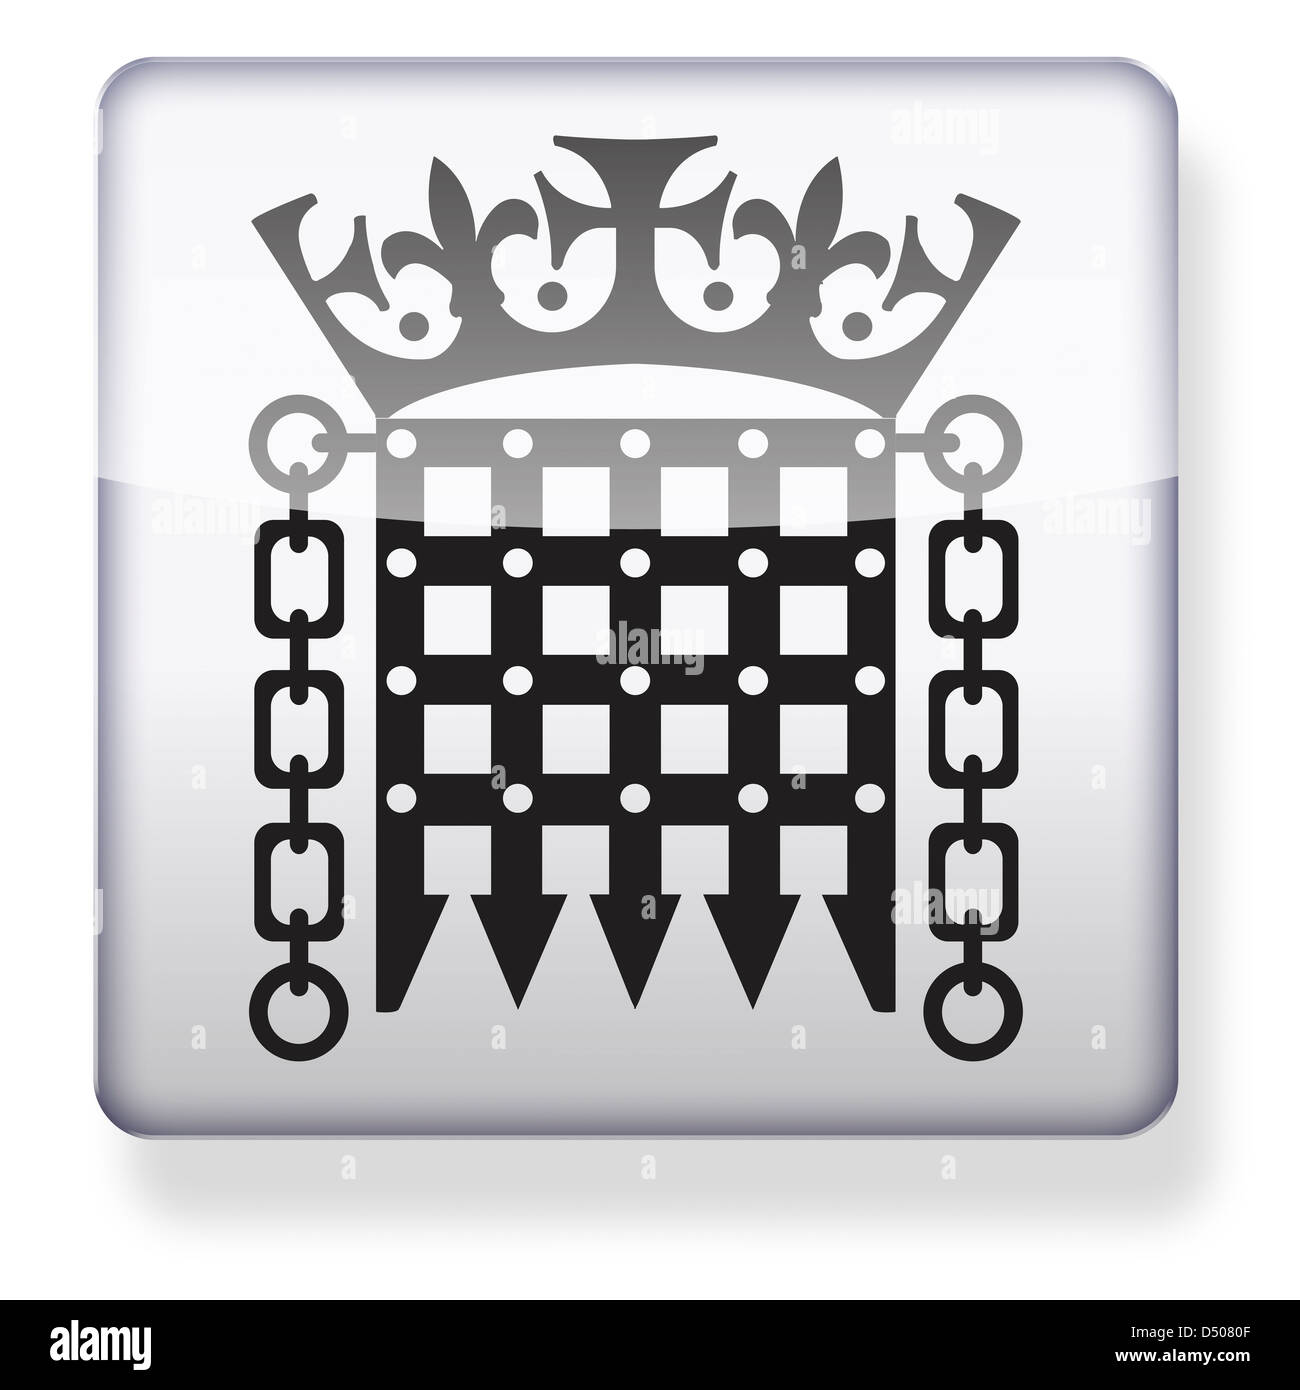 Parliament portcullis logo as an app icon. Clipping path included. - Stock Image